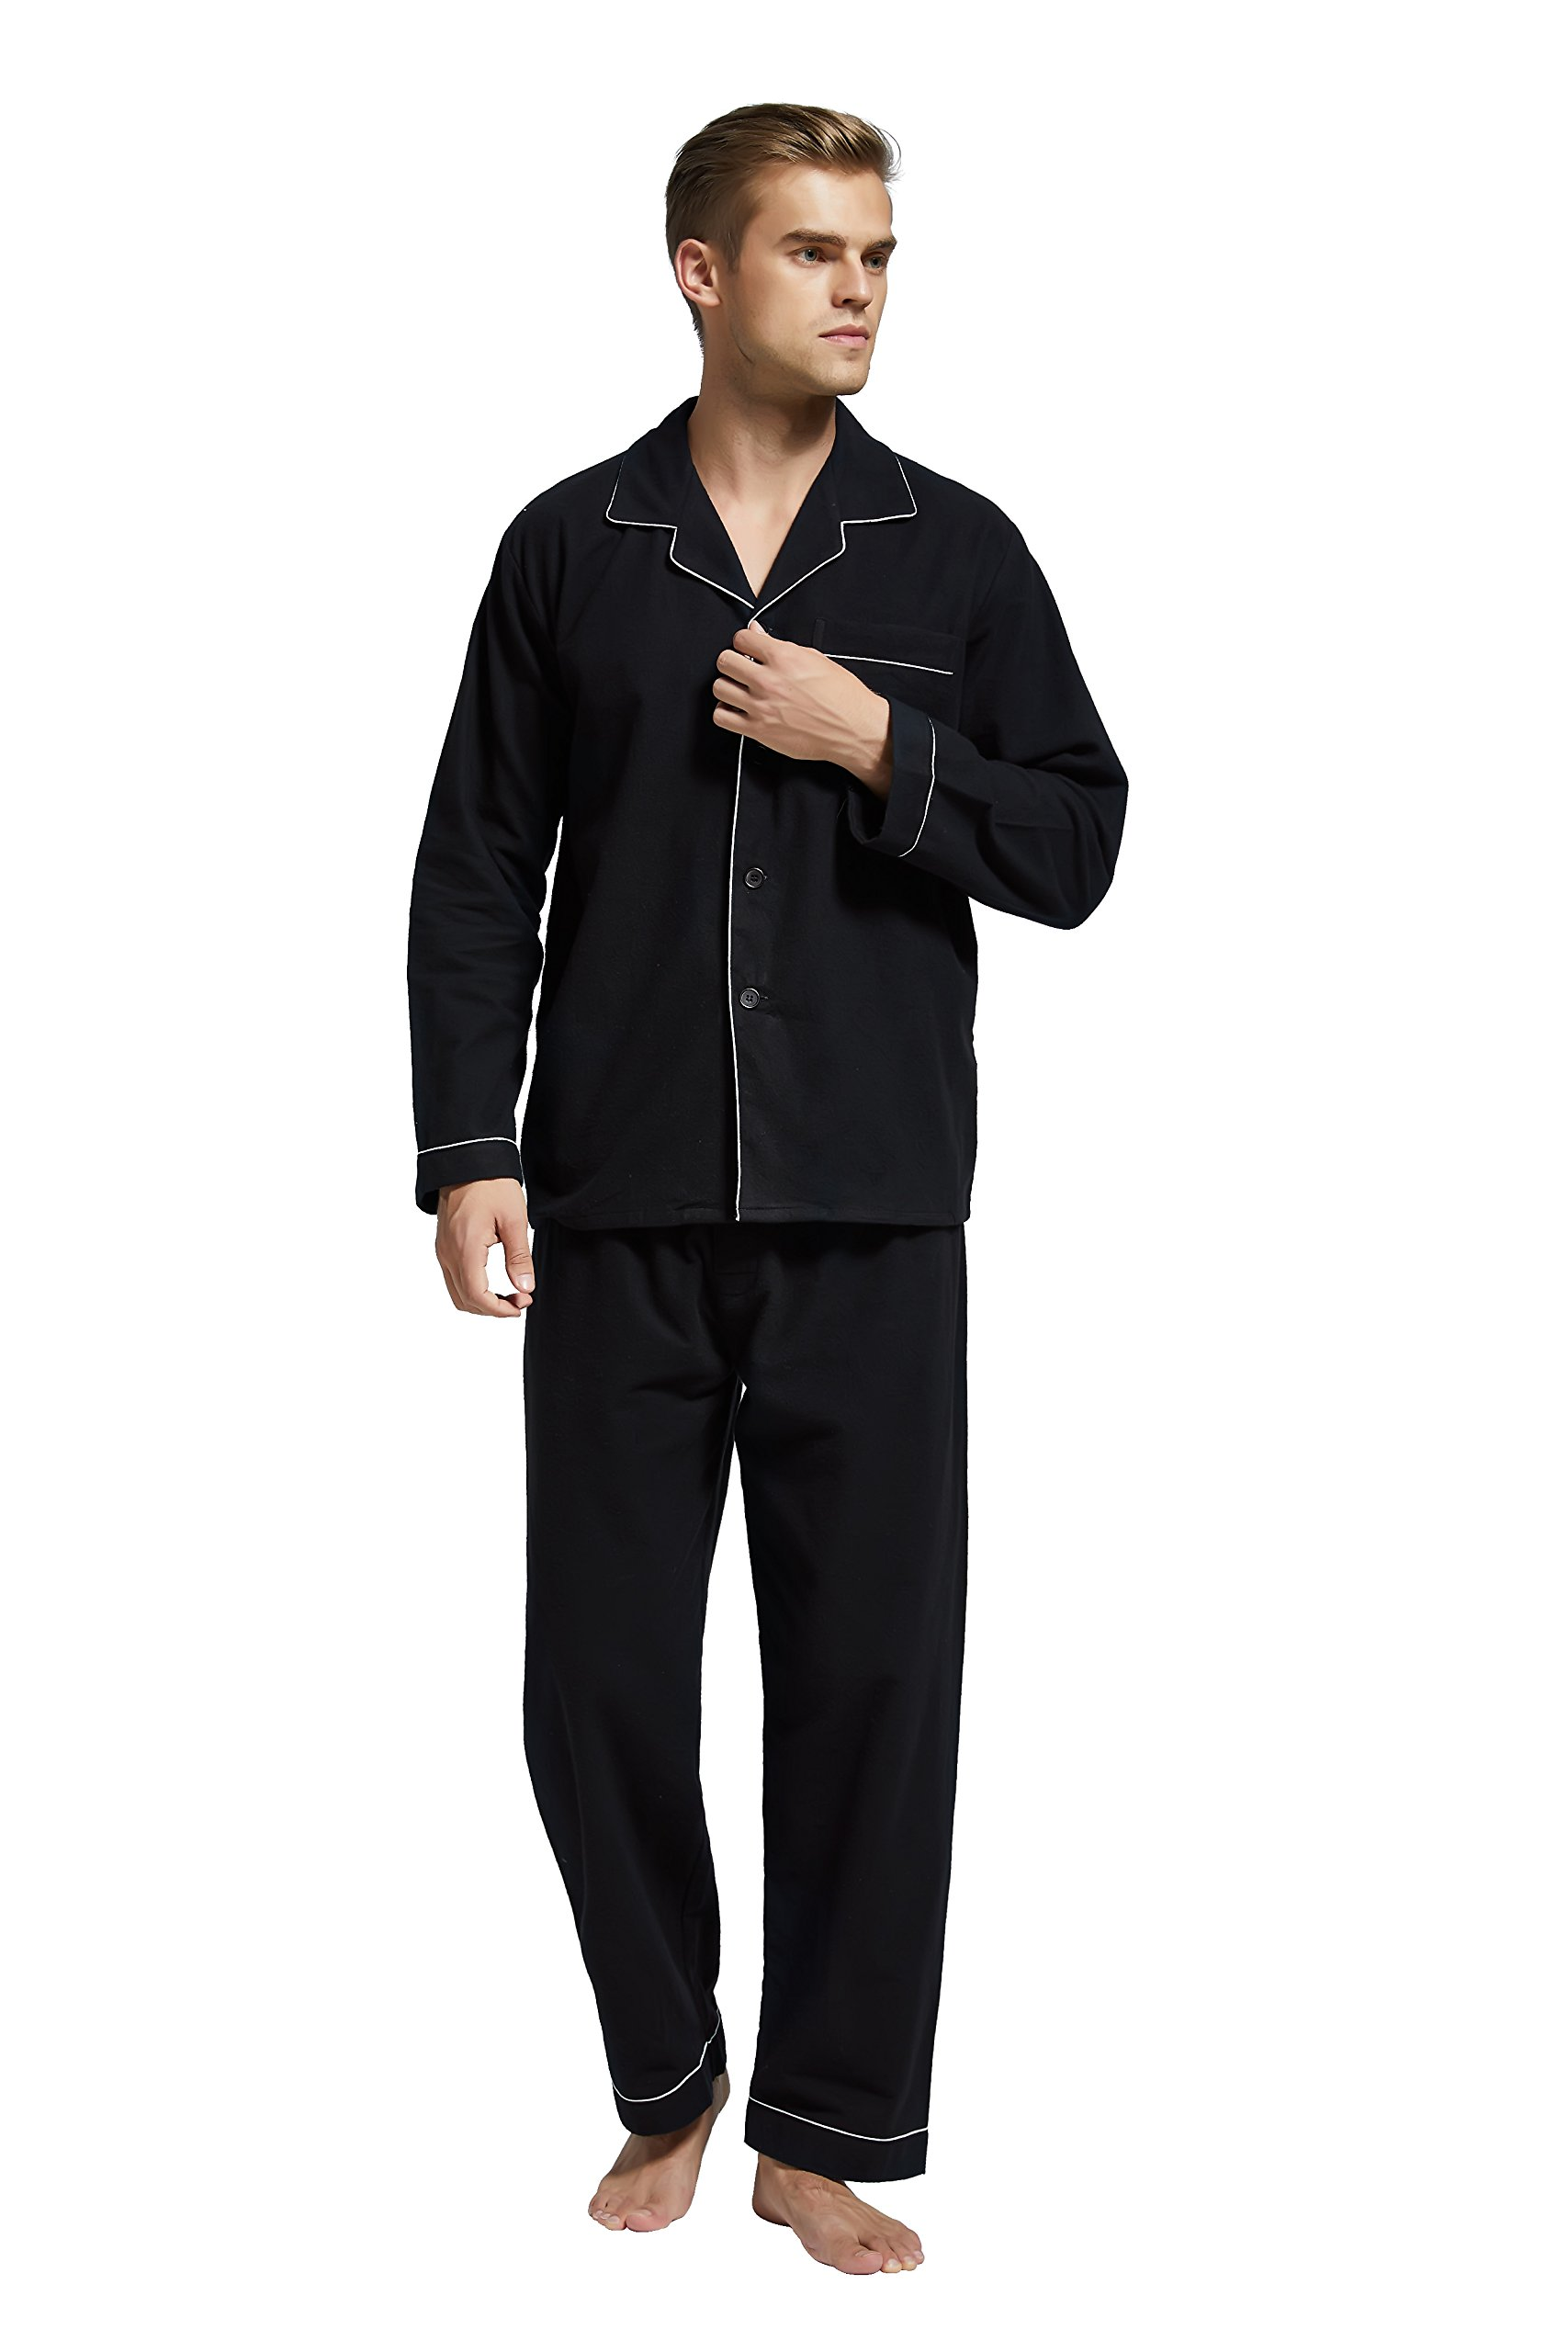 Men's Flannel Pajama Set, 100% Cotton Long Sleeve Sleepwear from Tony & Candice (XX-Large, Black with White Piping)